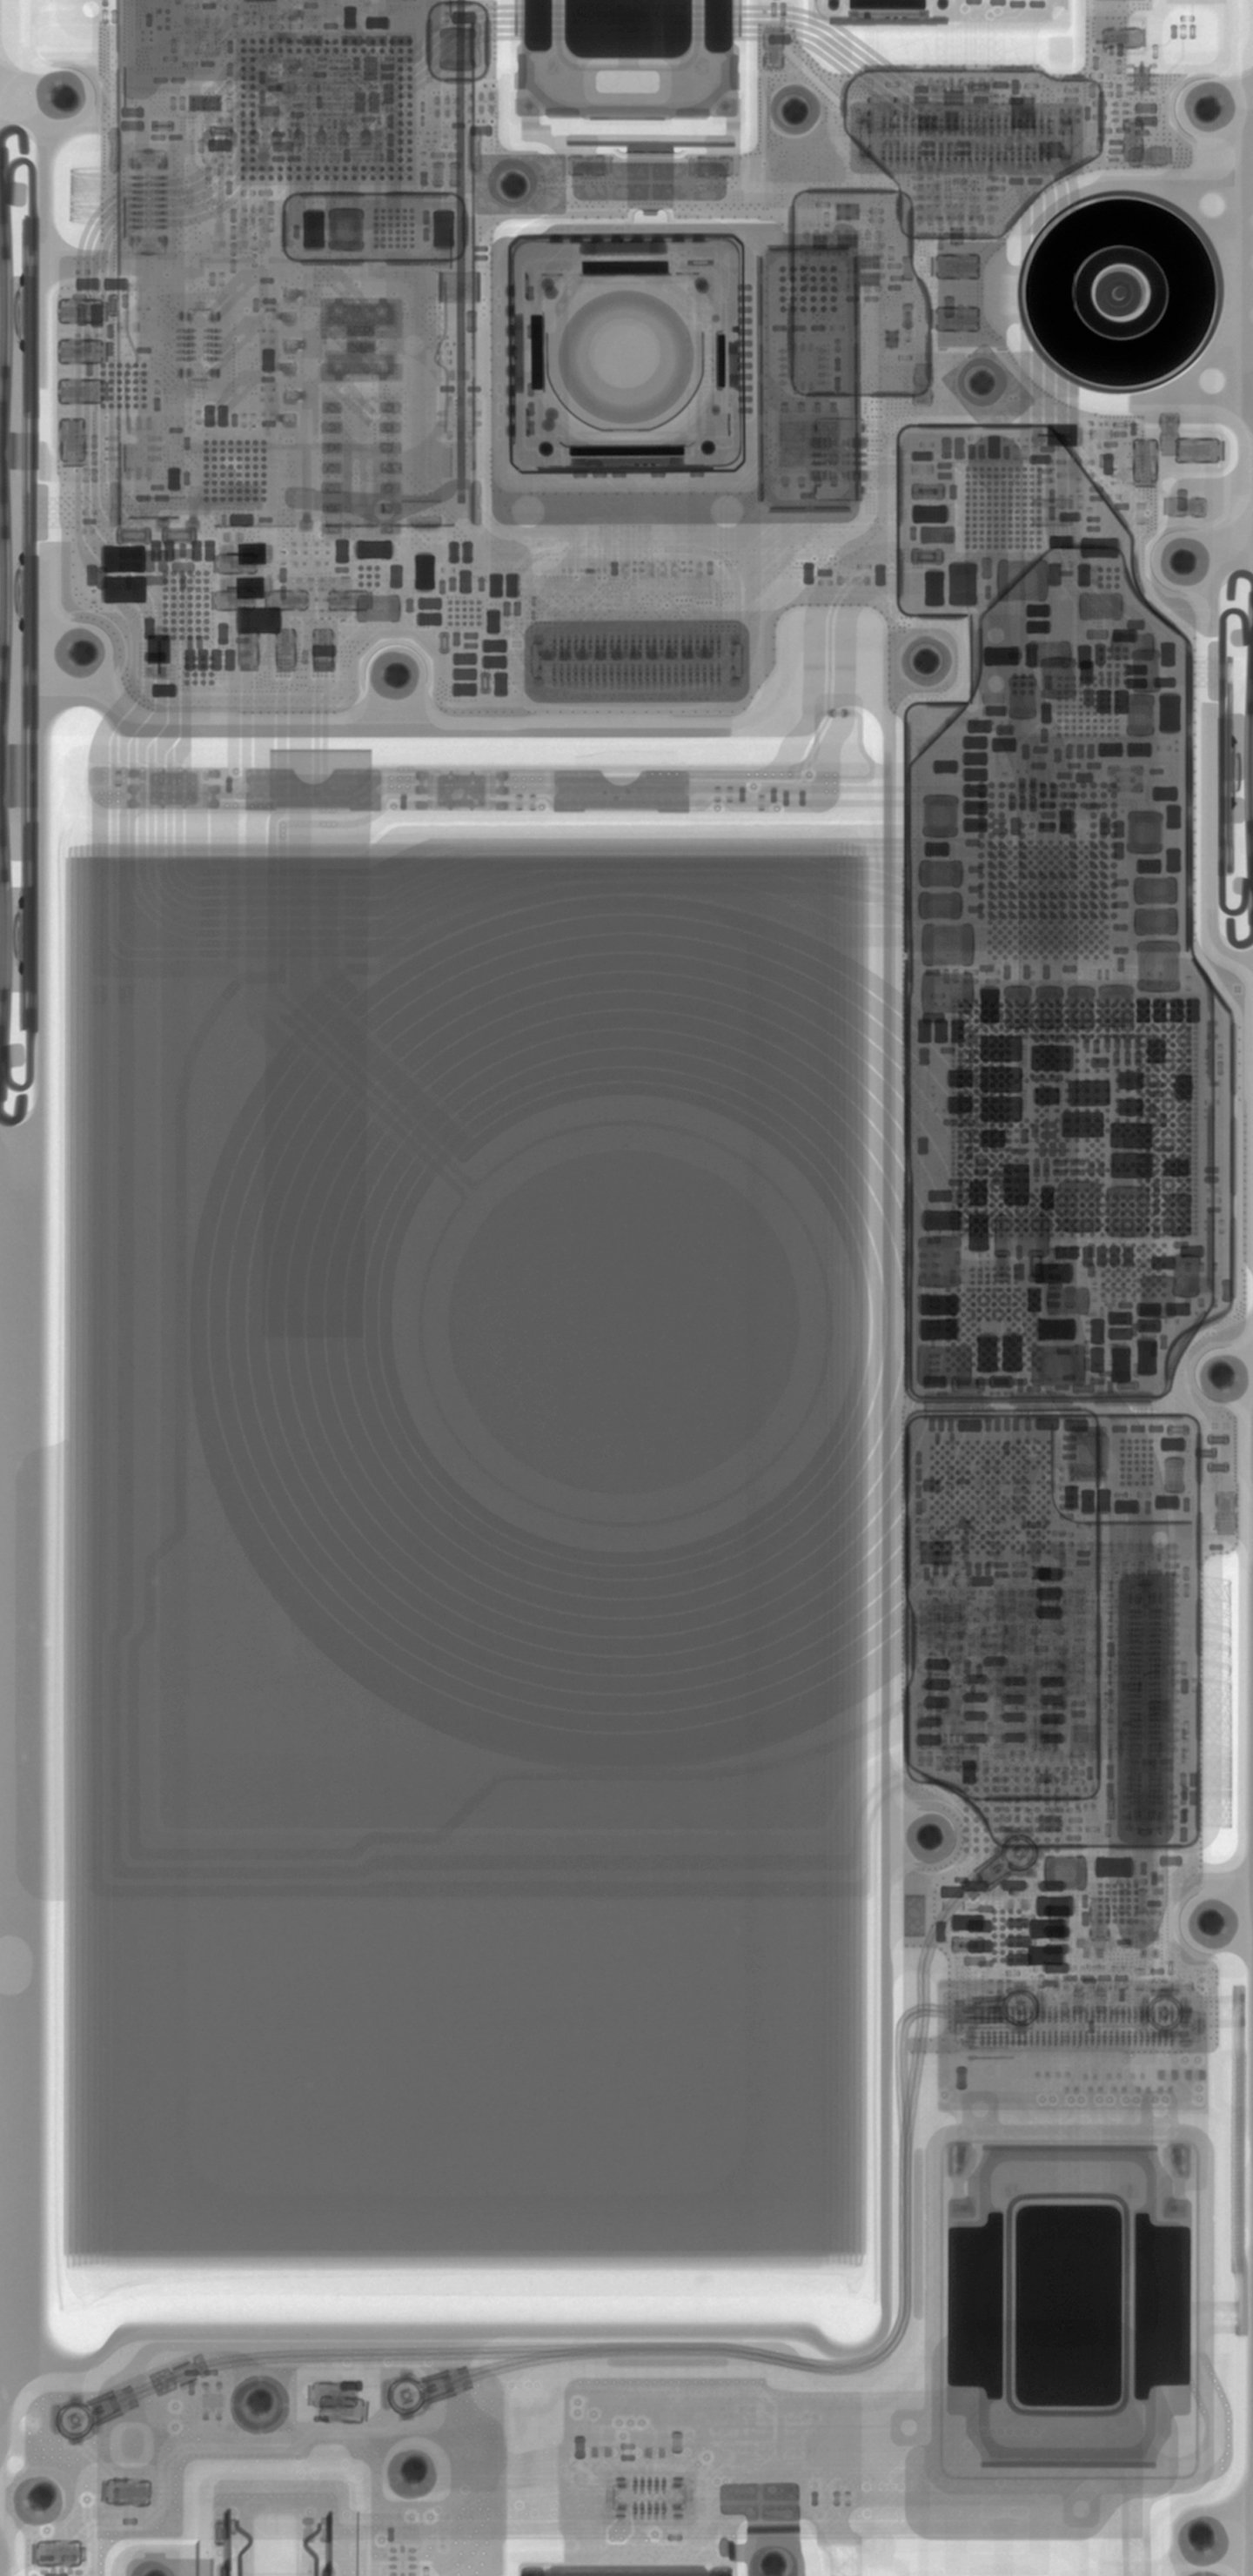 Turn your Samsung Galaxy S9 Inside Out With These Wallpapers - iFixit